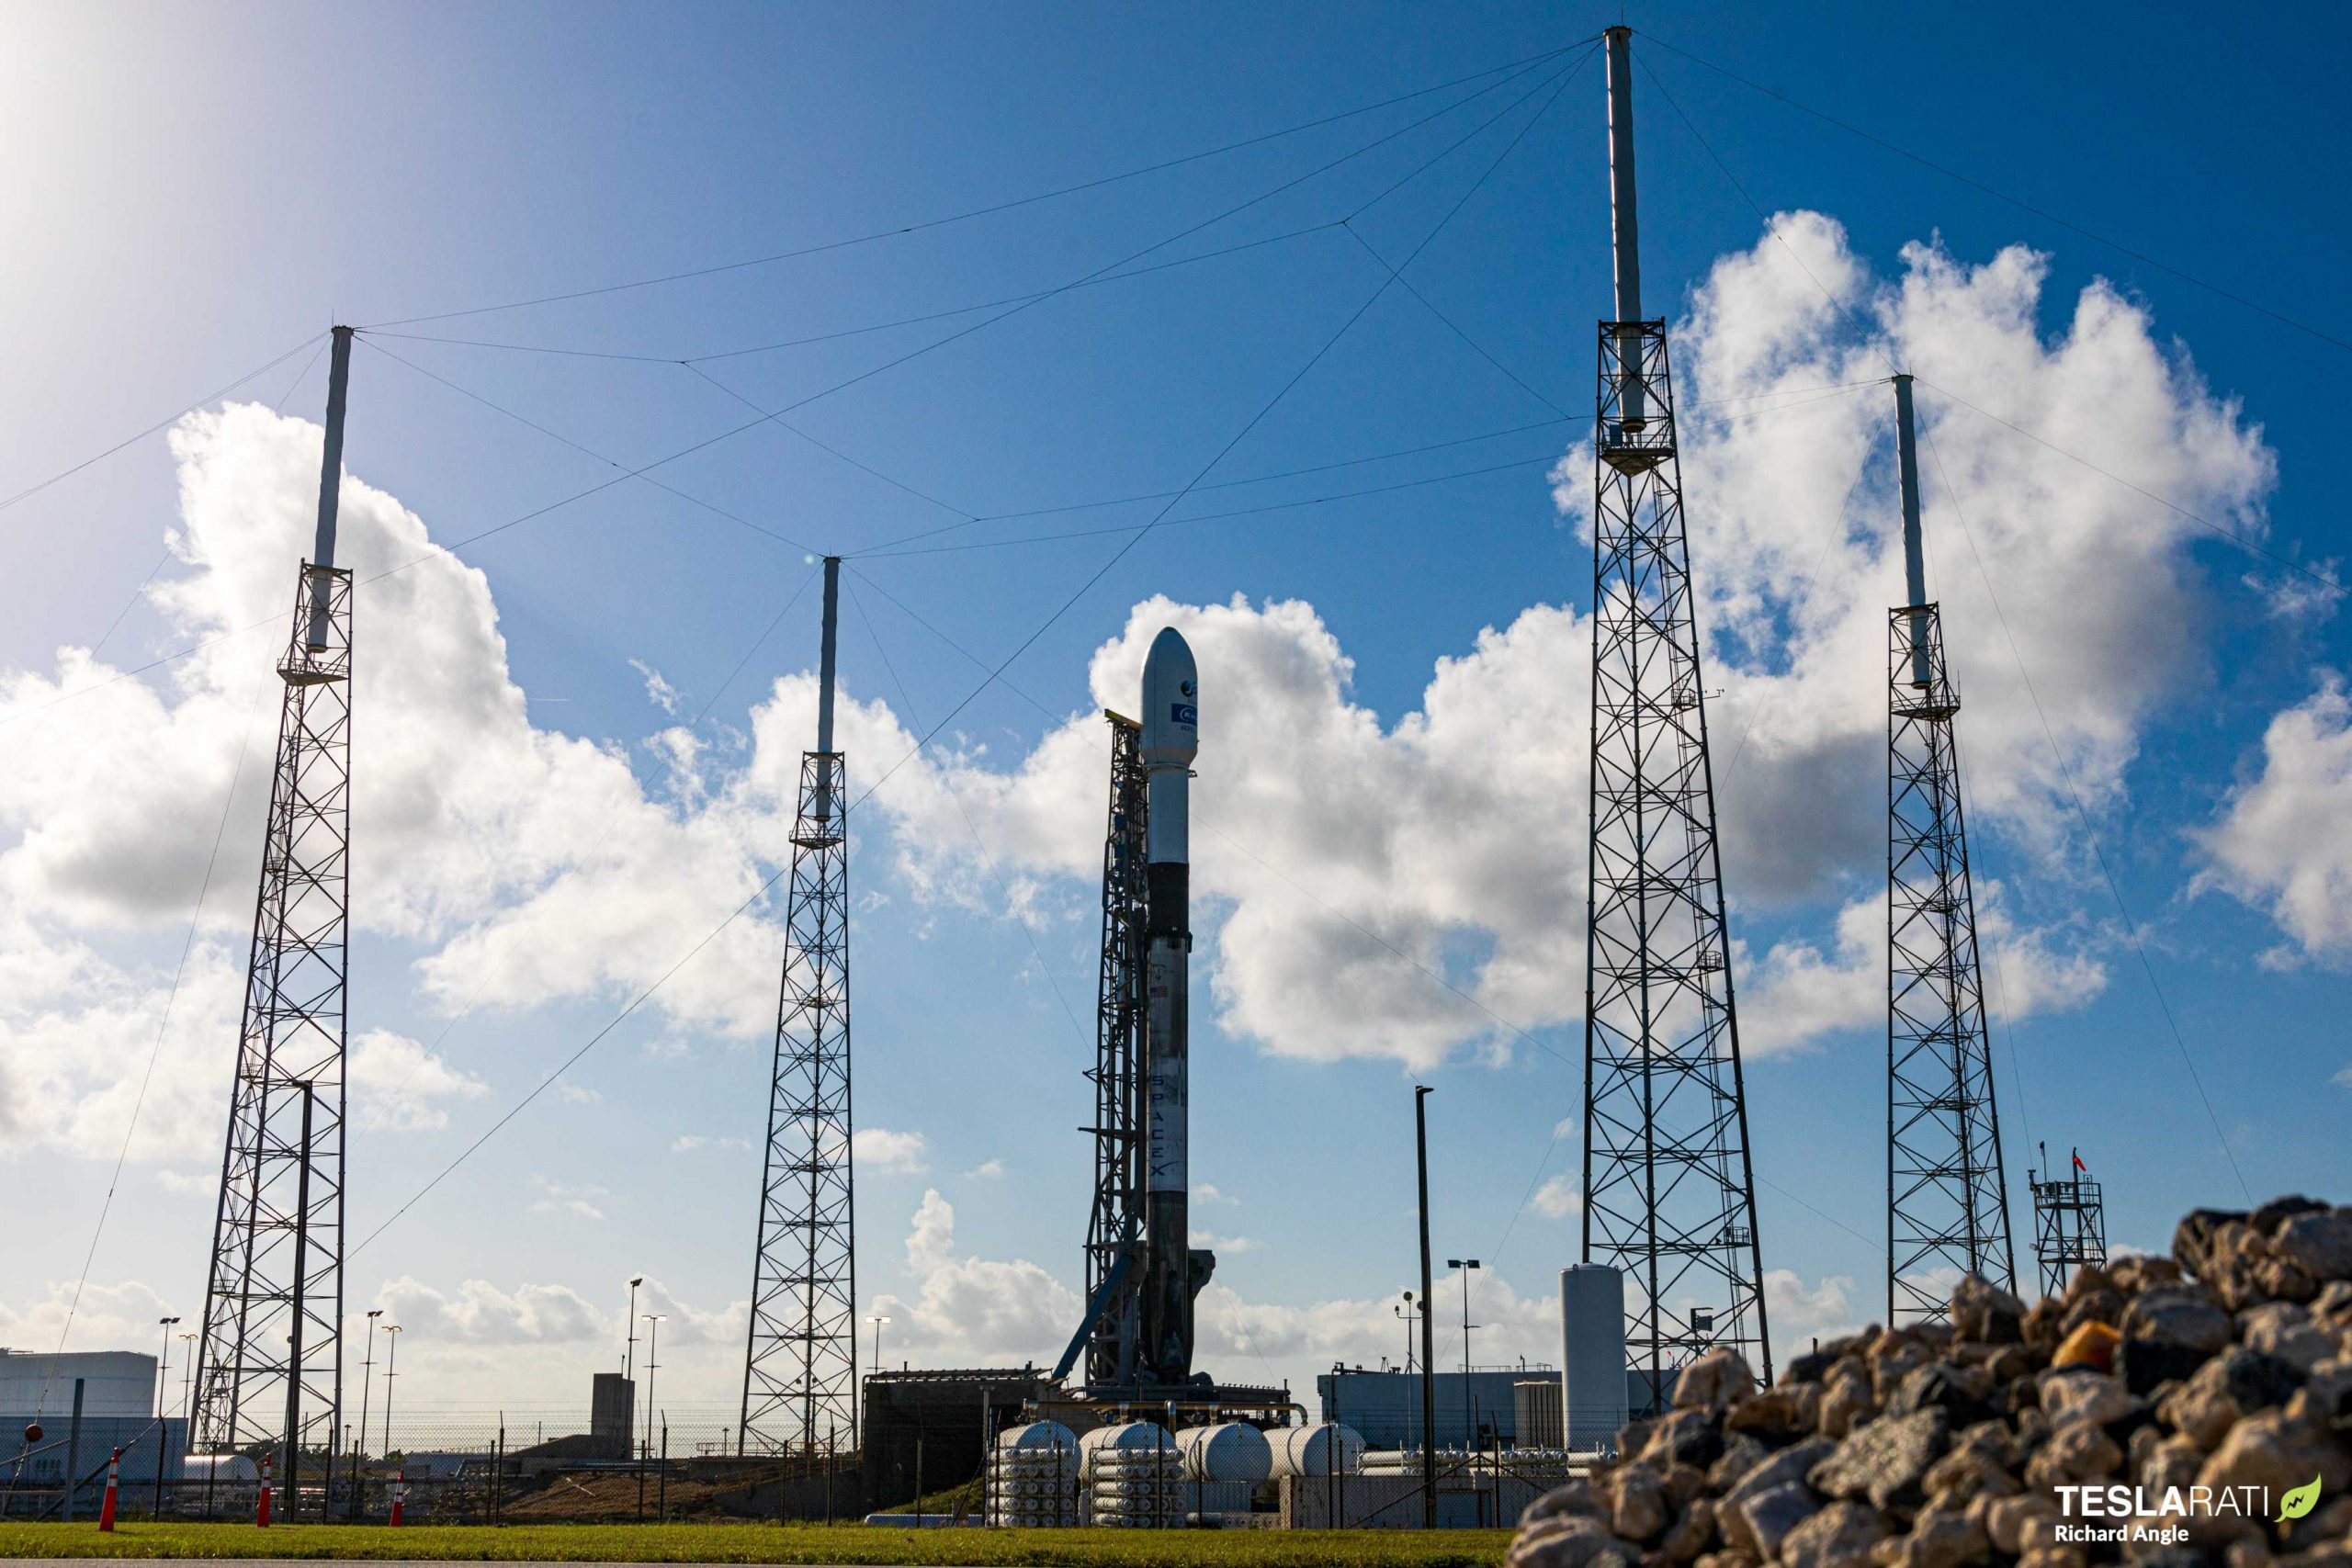 Kacific-1 Falcon 9 B1056 LC-40 121519 (Richard Angle) (3) (c)